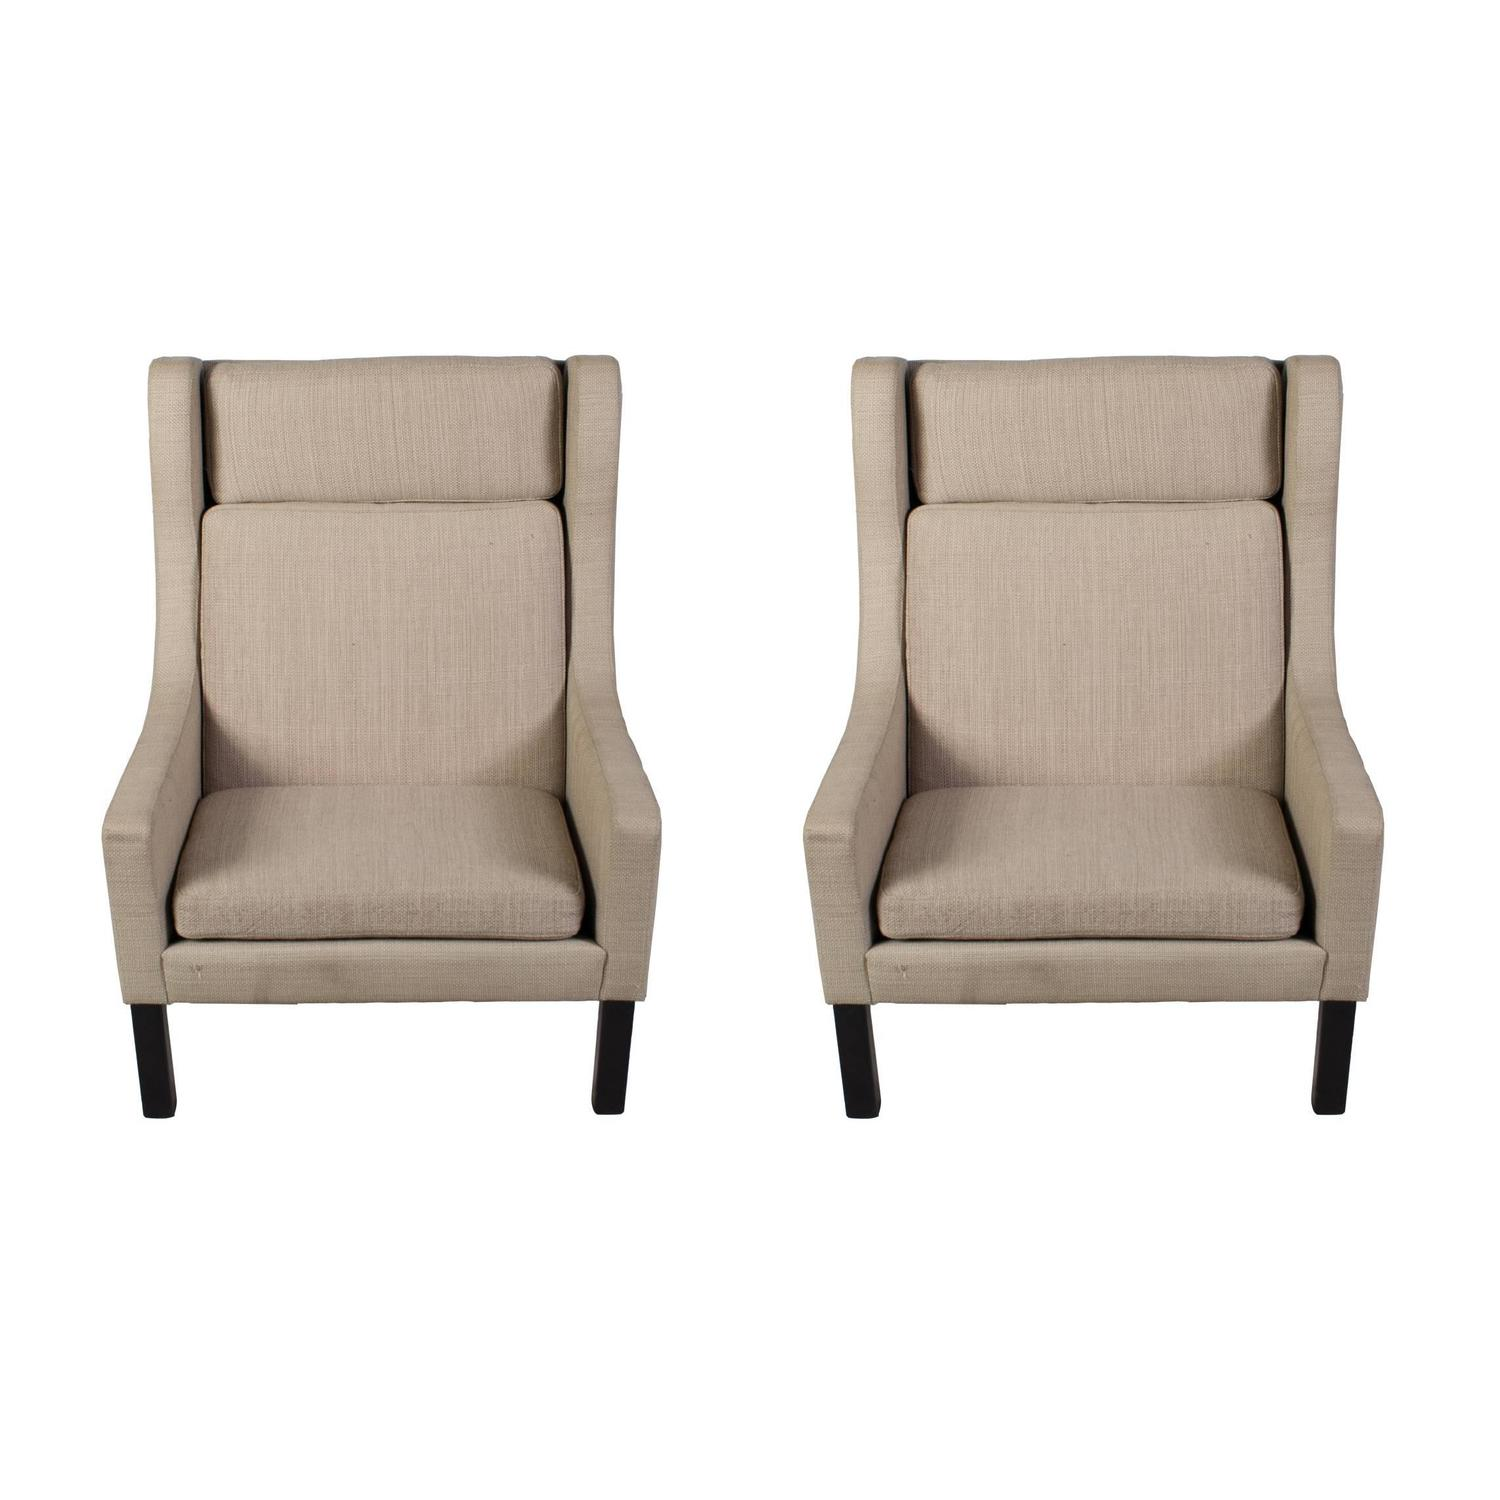 Very Modern Looking Pair Of Wing Chairs For Sale At 1stdibs